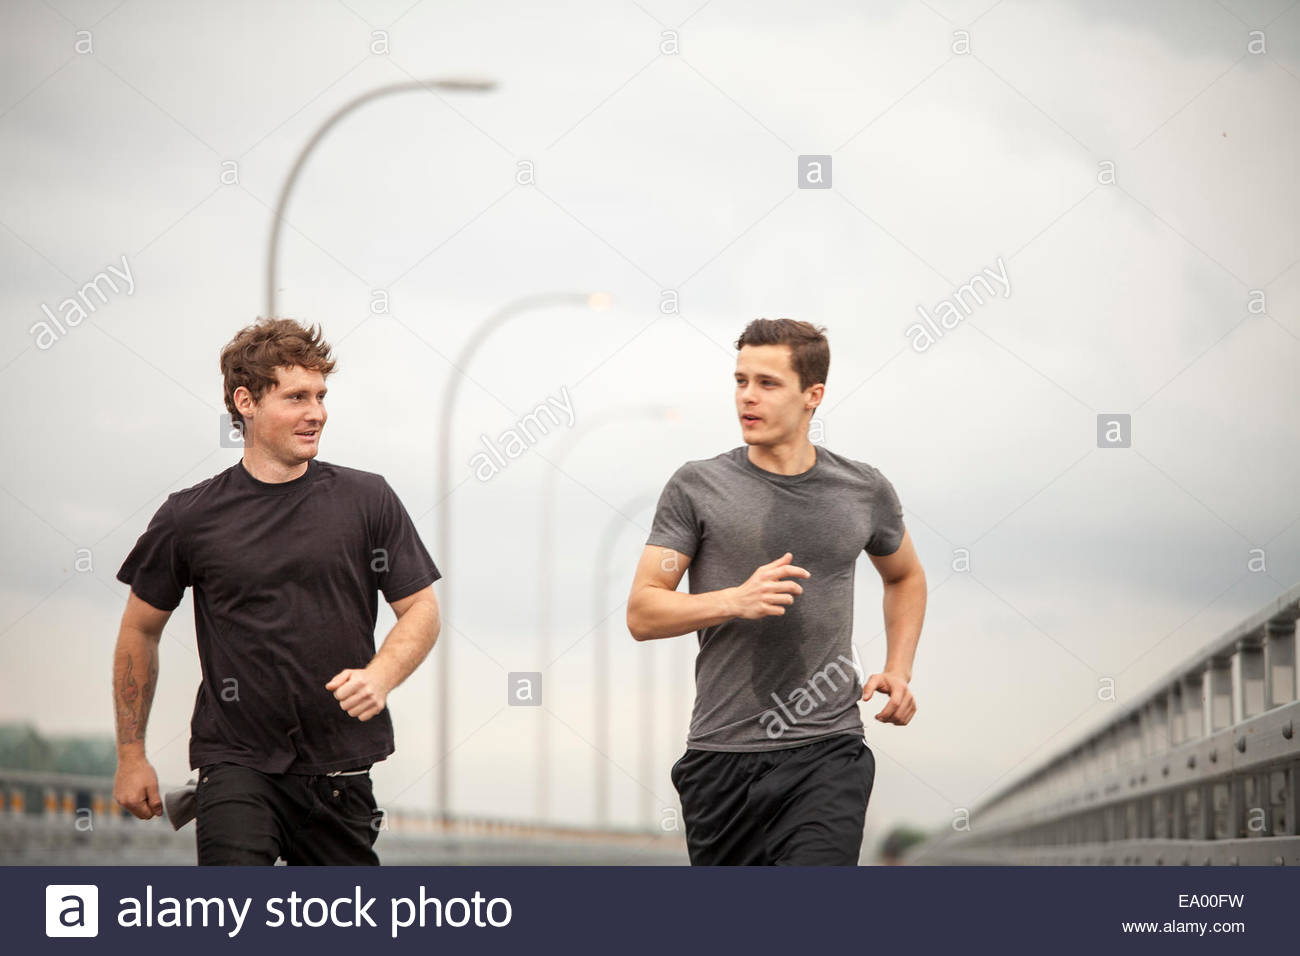 Young men jogging - Stock Image